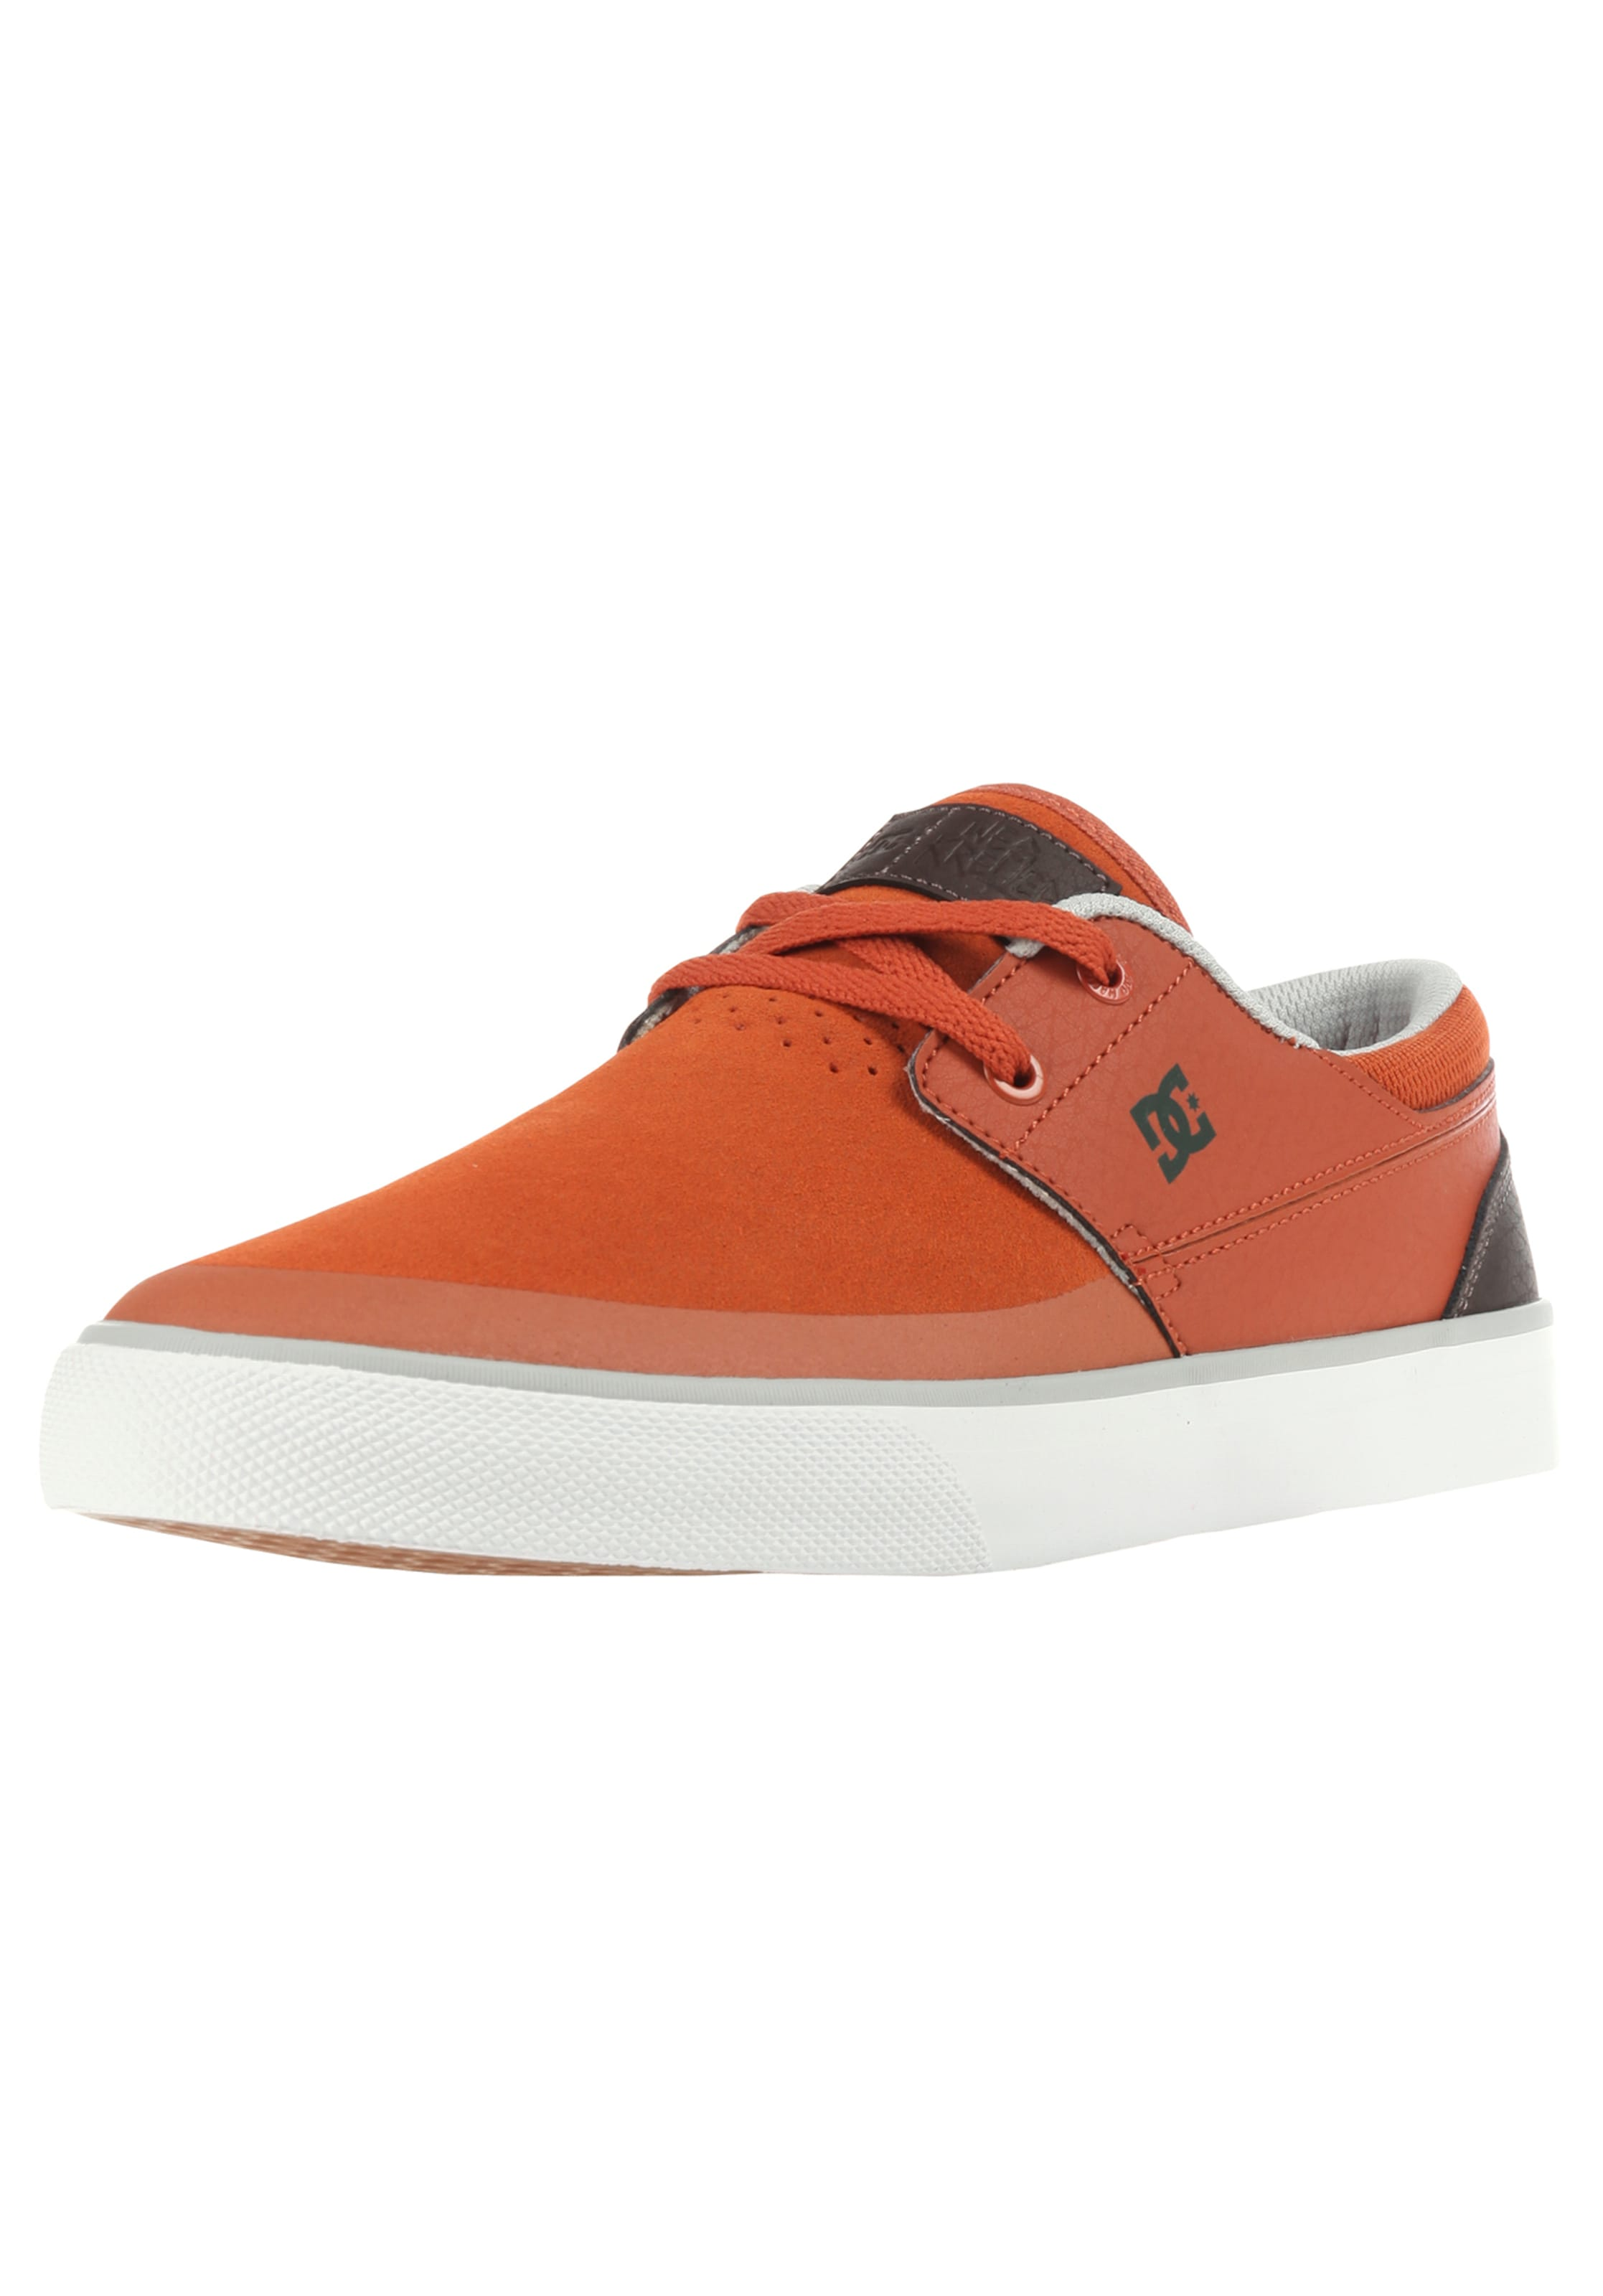 DC Shoes Sneaker  Wes Kremer 2